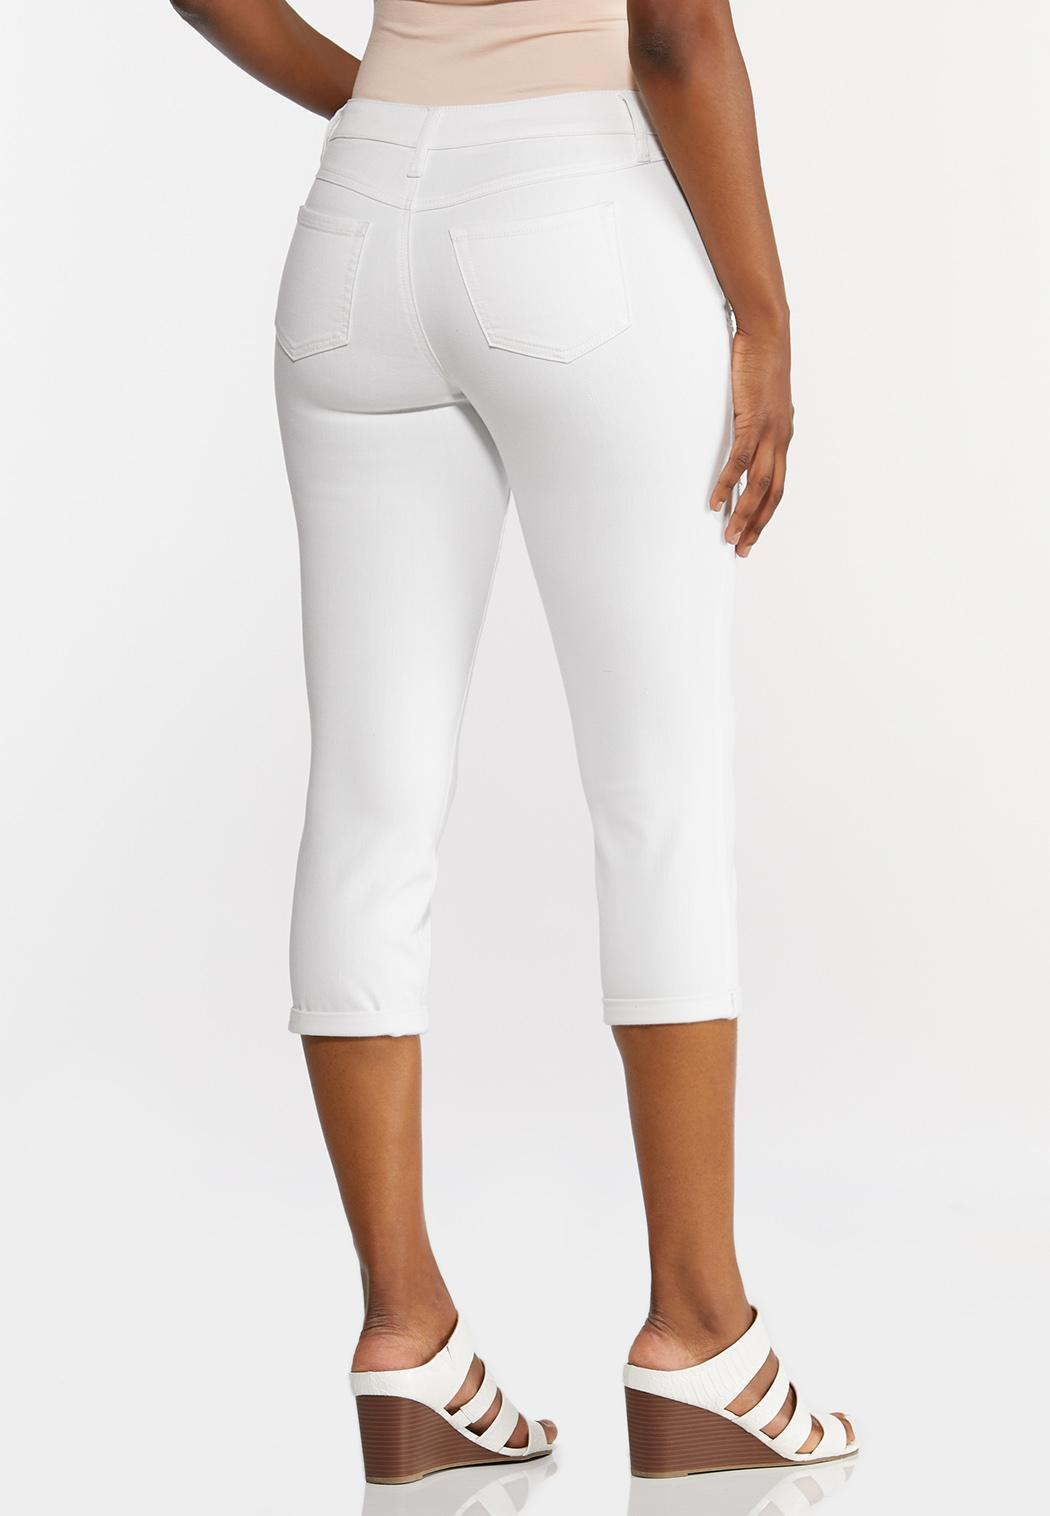 Distressed White Cropped Jeans (Item #44240489)